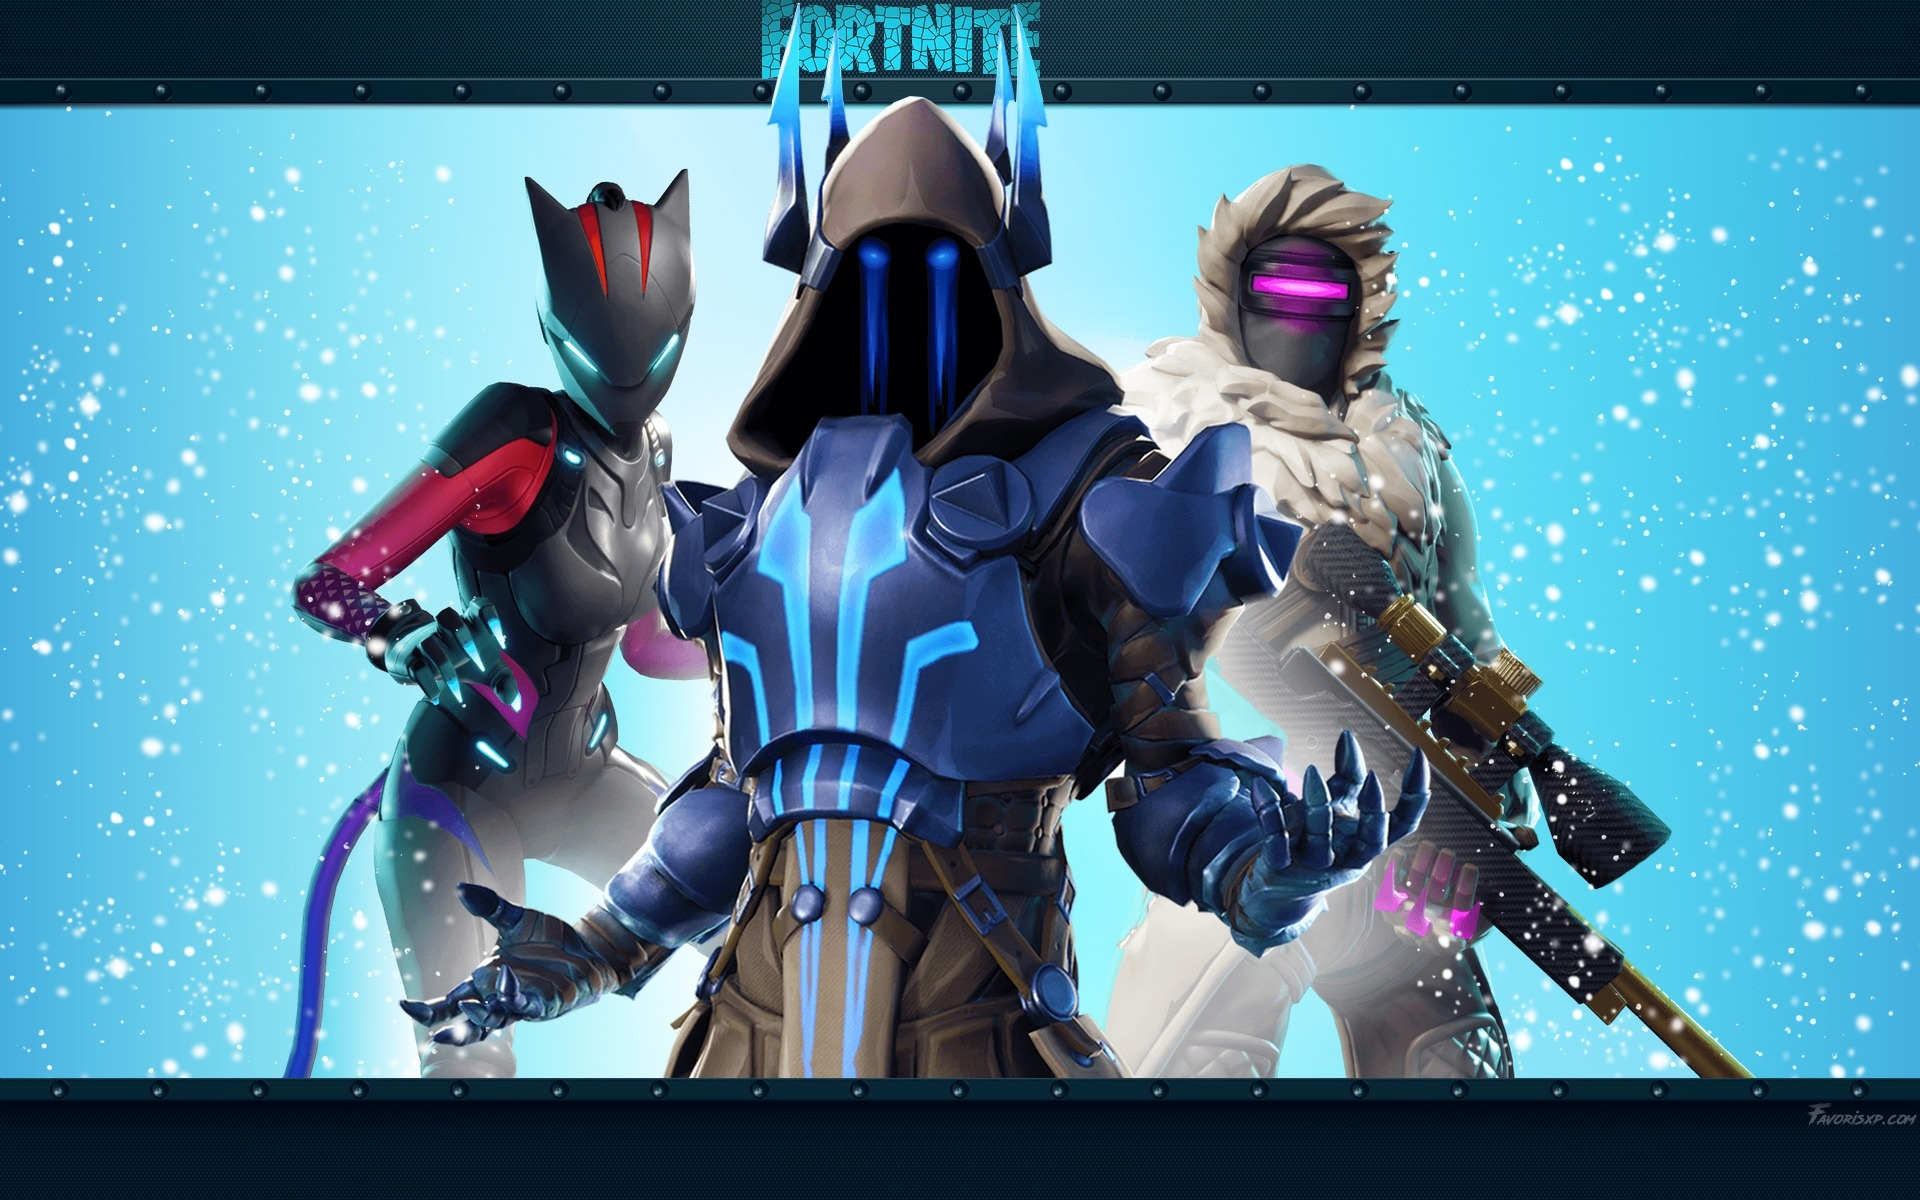 Lynx Fortnite Wallpaper Hd